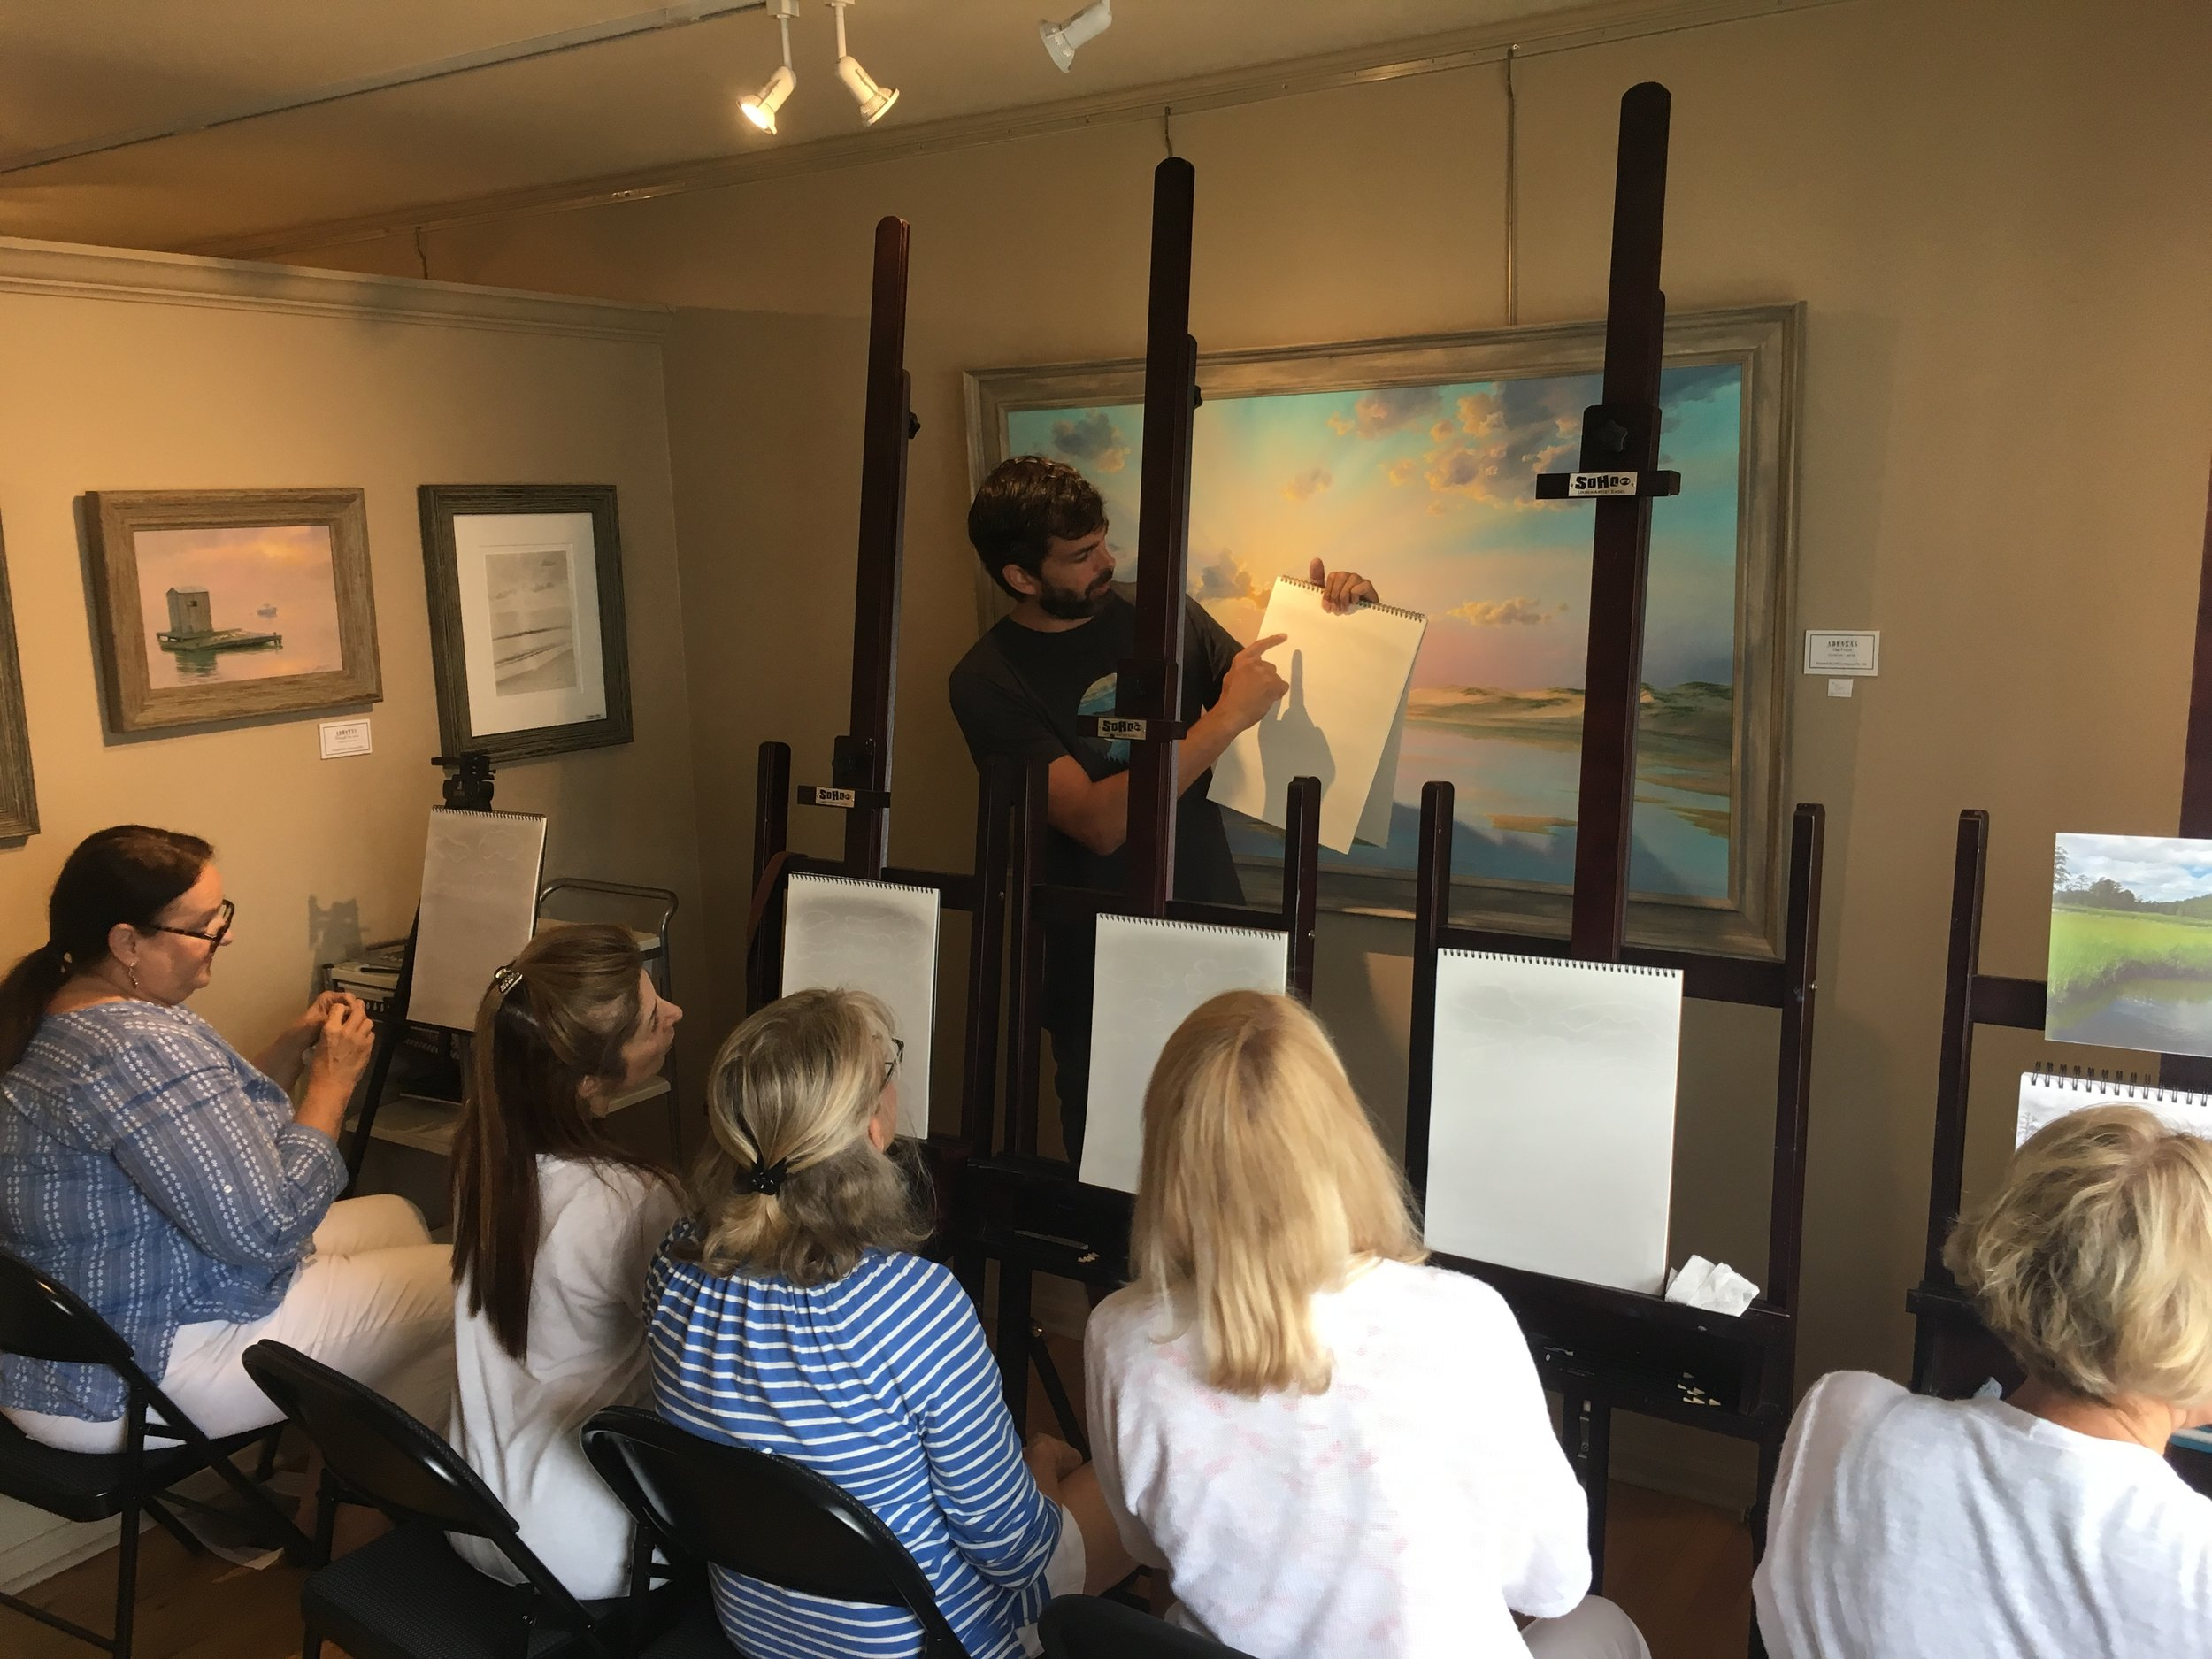 Abraxas demonstrating sketching techniques at his studio. Demonstrations and explanations ensure understanding even by those who say they can't draw!